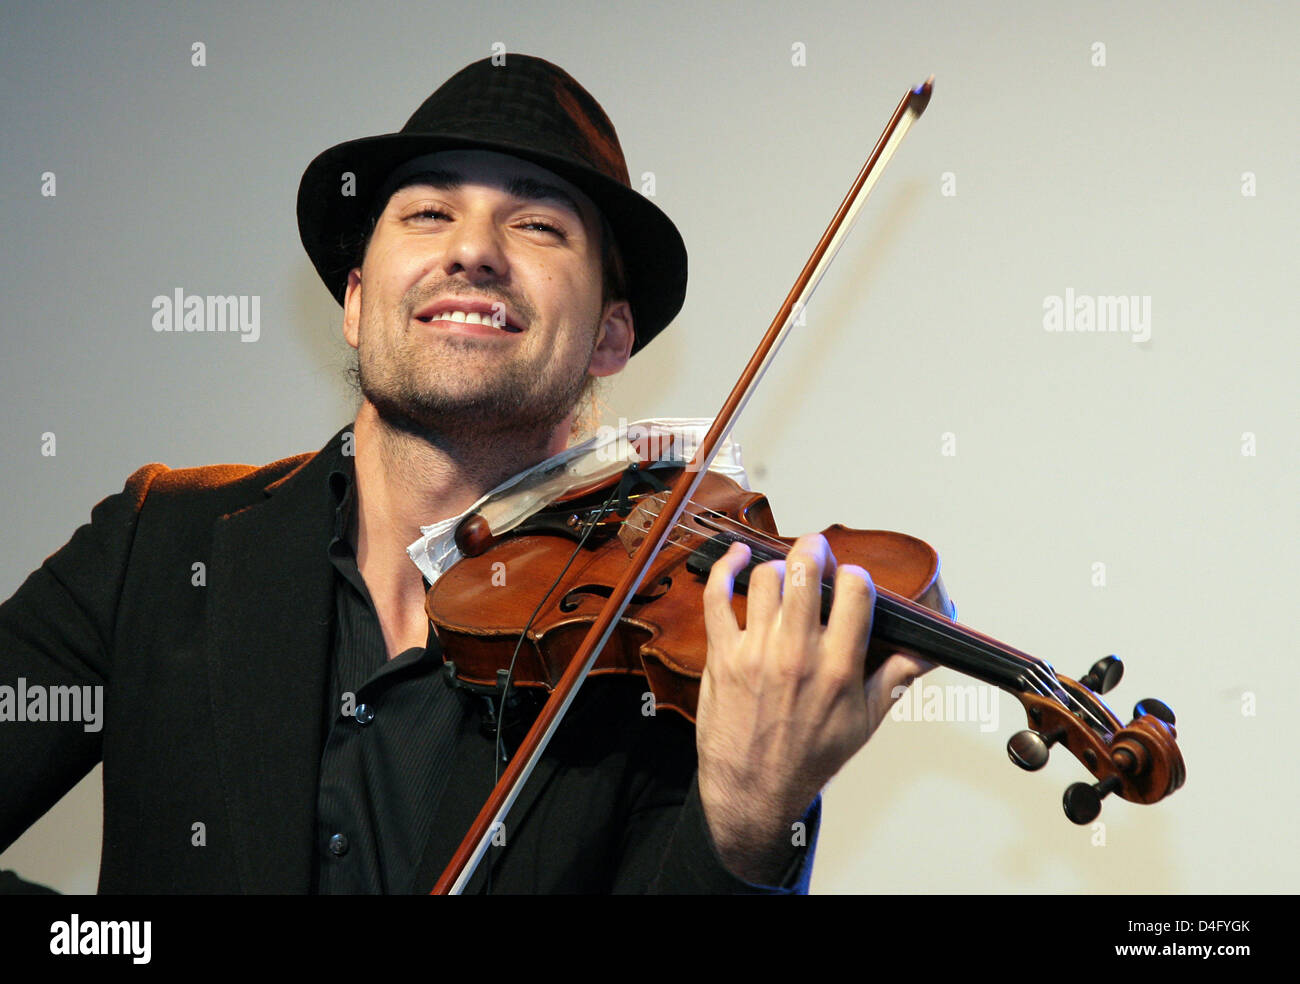 German star violinist David Garrett performs during a Montblanc watch presentation at KaDeWe in Berlin, Germany, - Stock Image